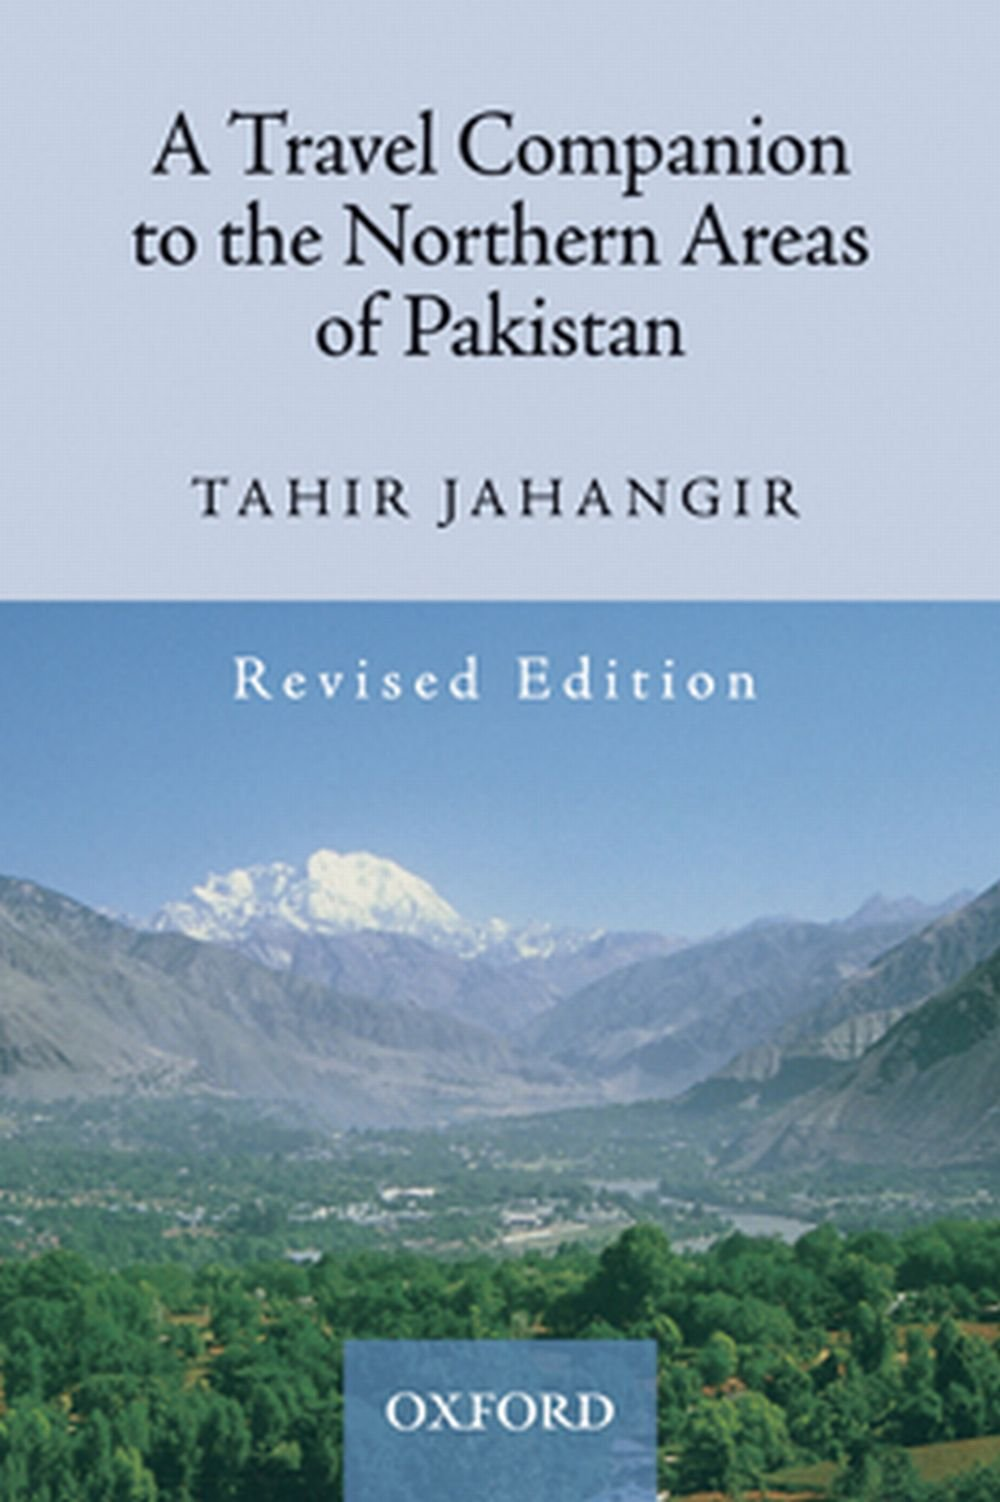 A Travel Companion to the Northern Areas of Pakistan Book Cover